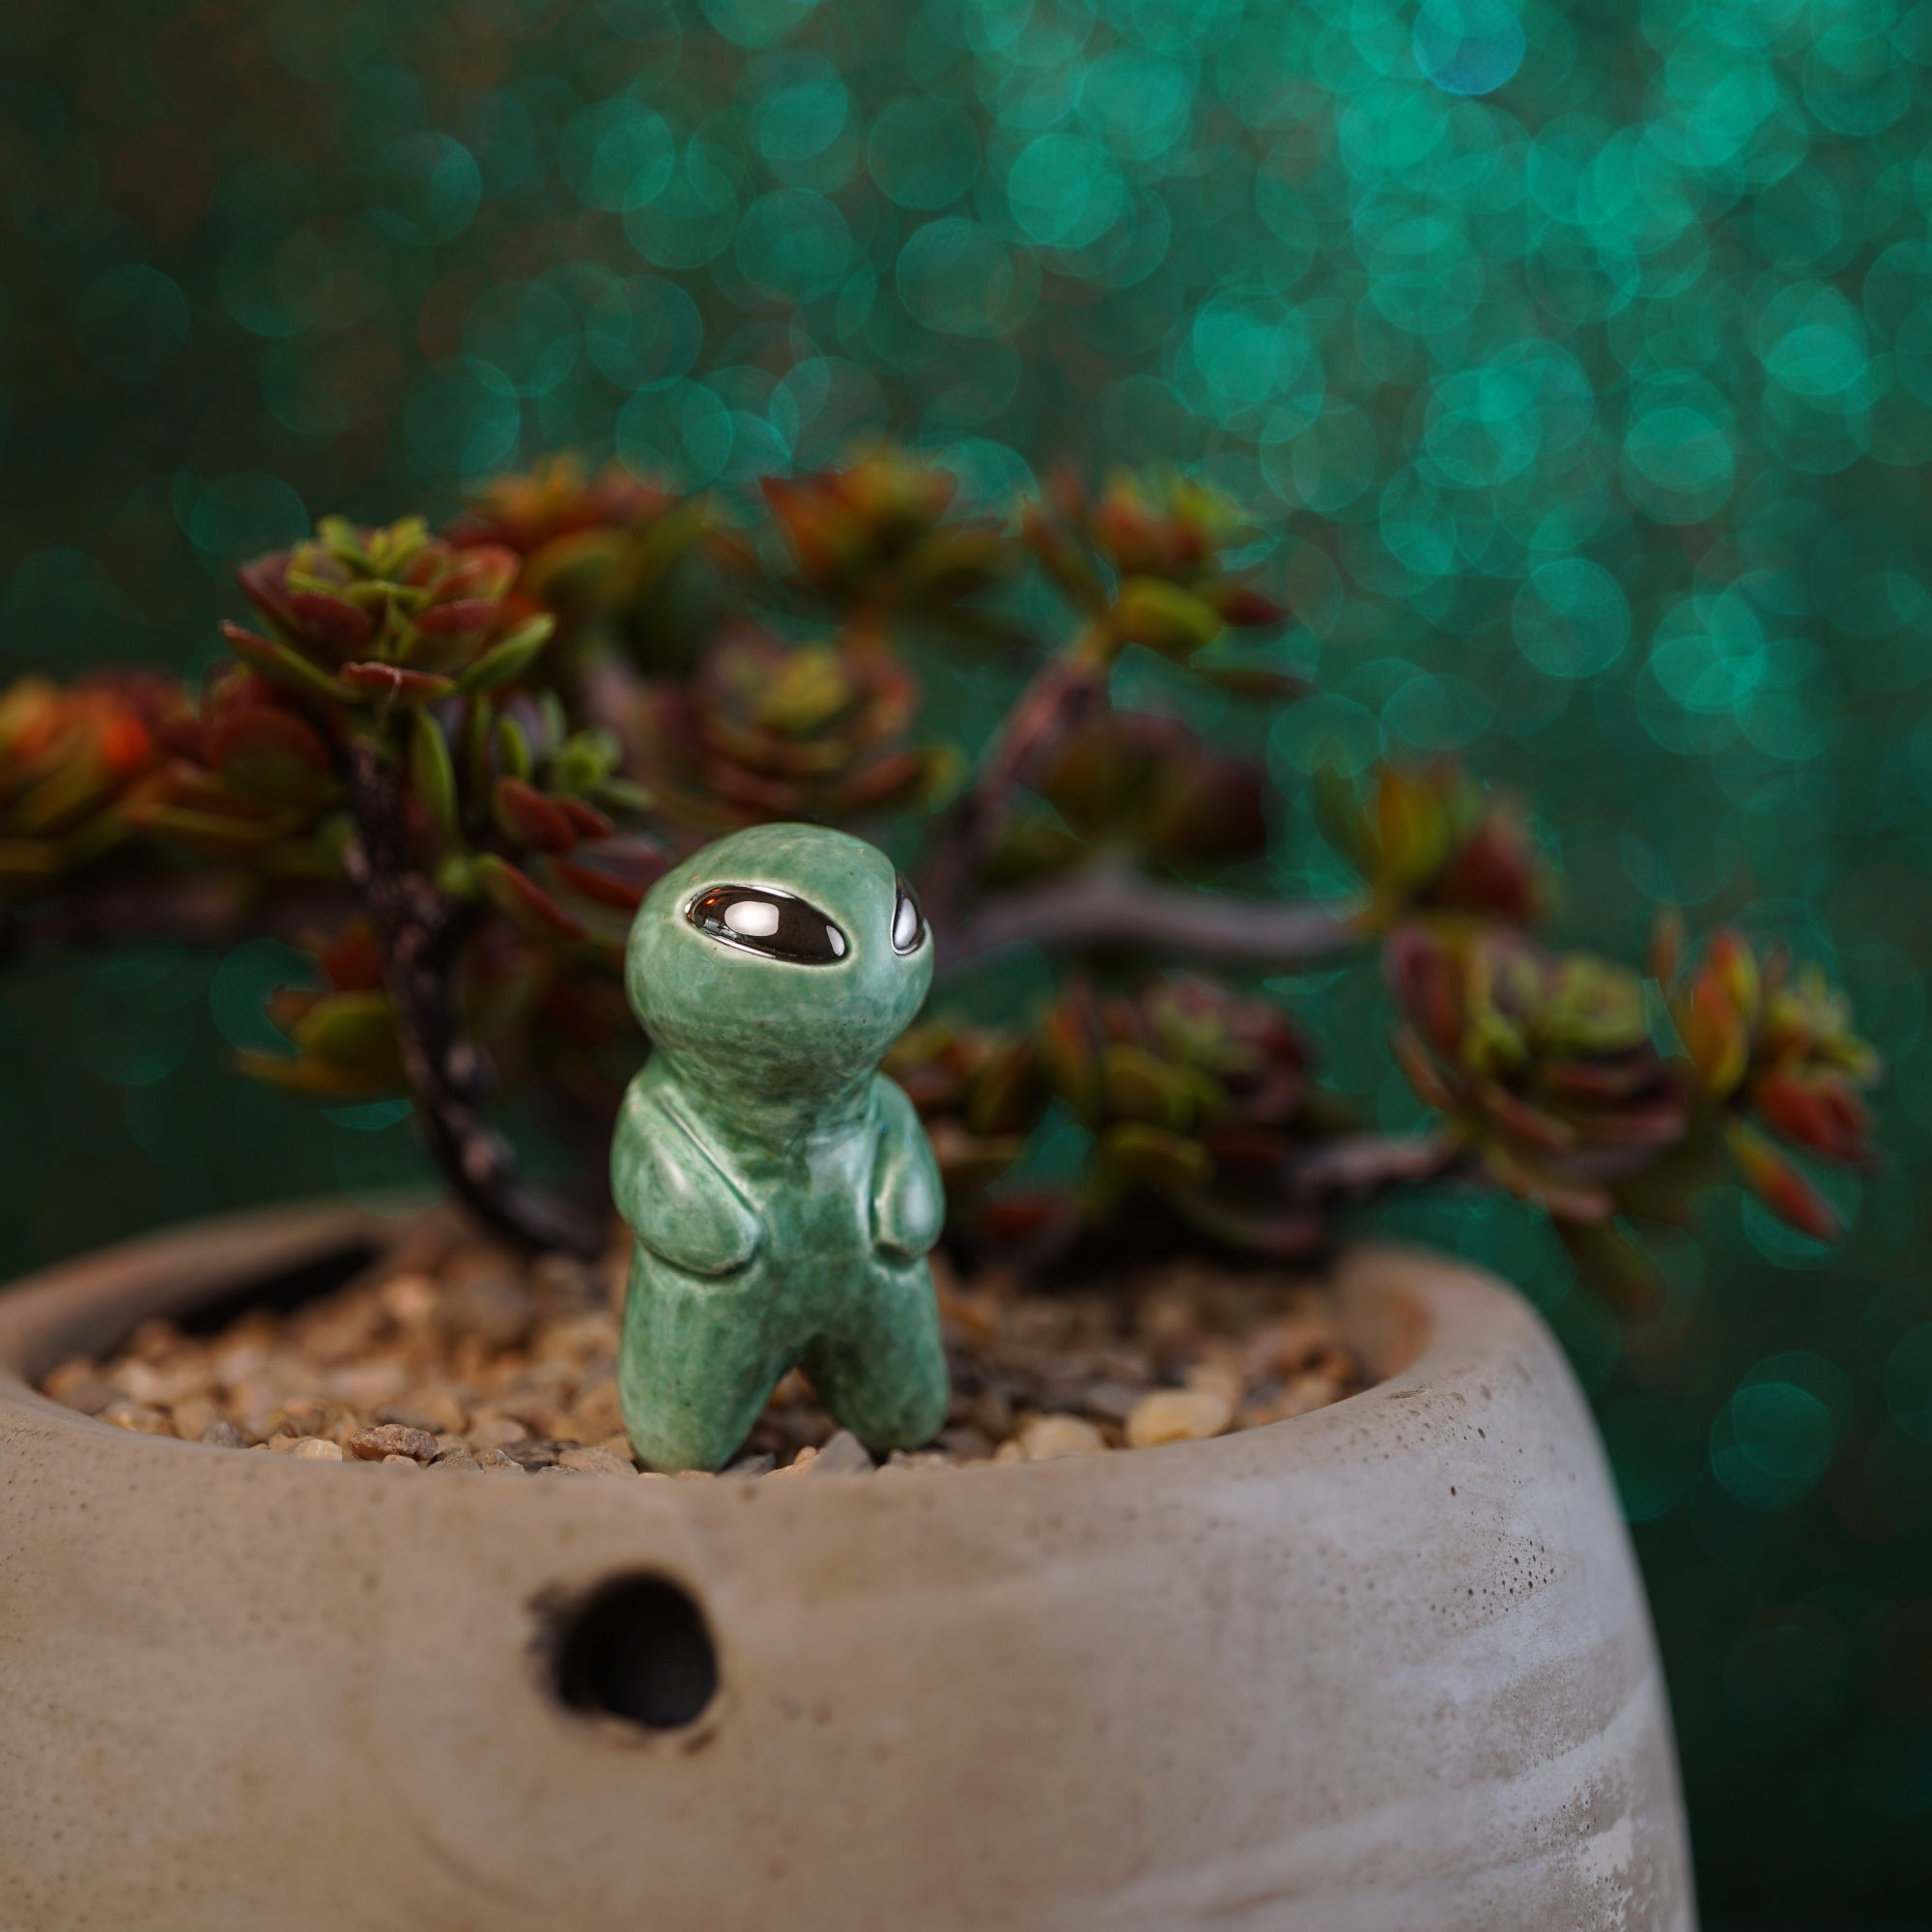 Planter Alien Figurine